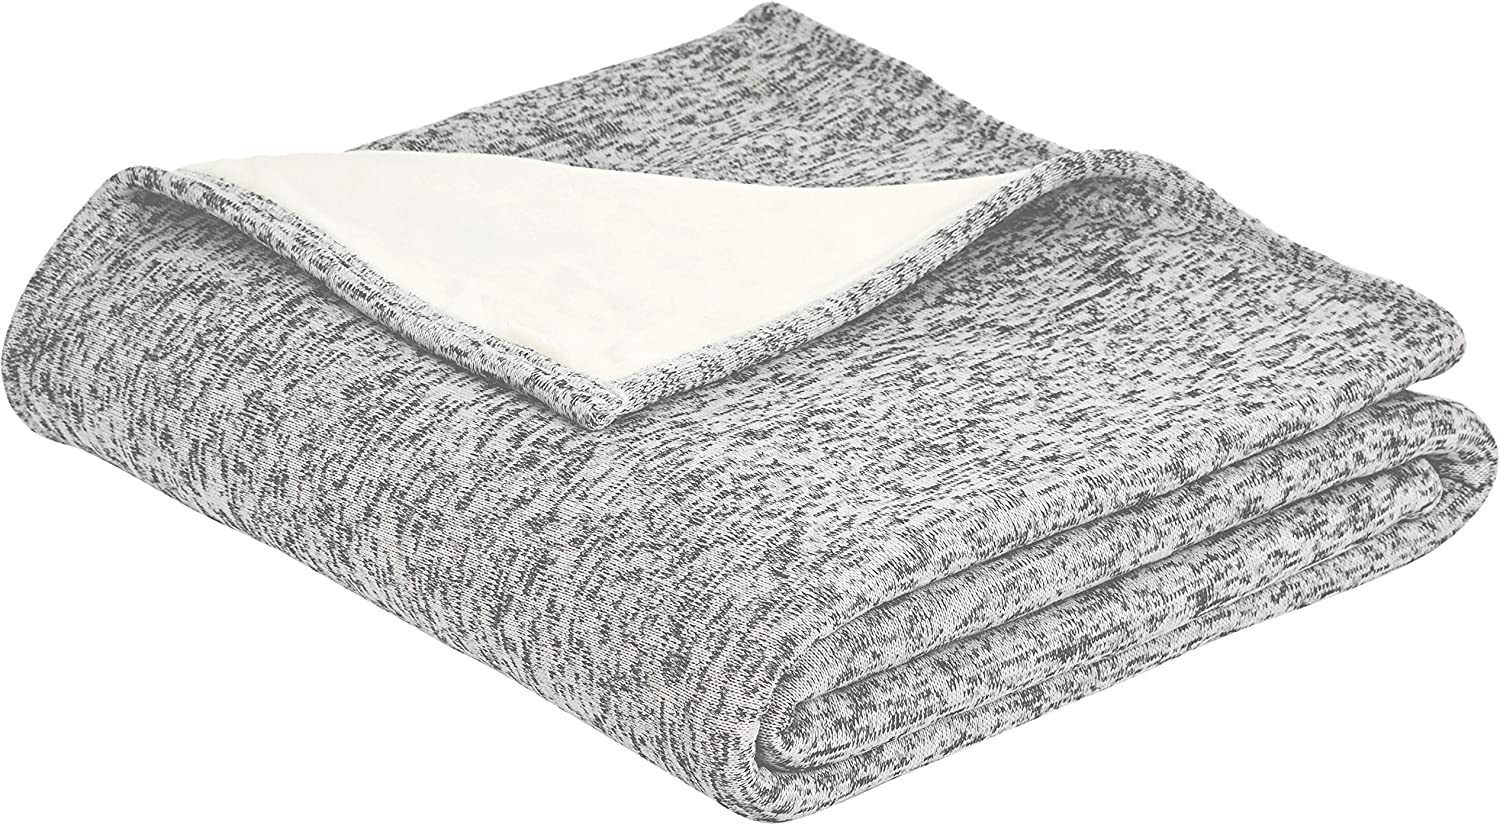 AmazonBasics Reversible Heather Knitted & Sherpa Throw Blanket - 50 x 60 Inch, Grey